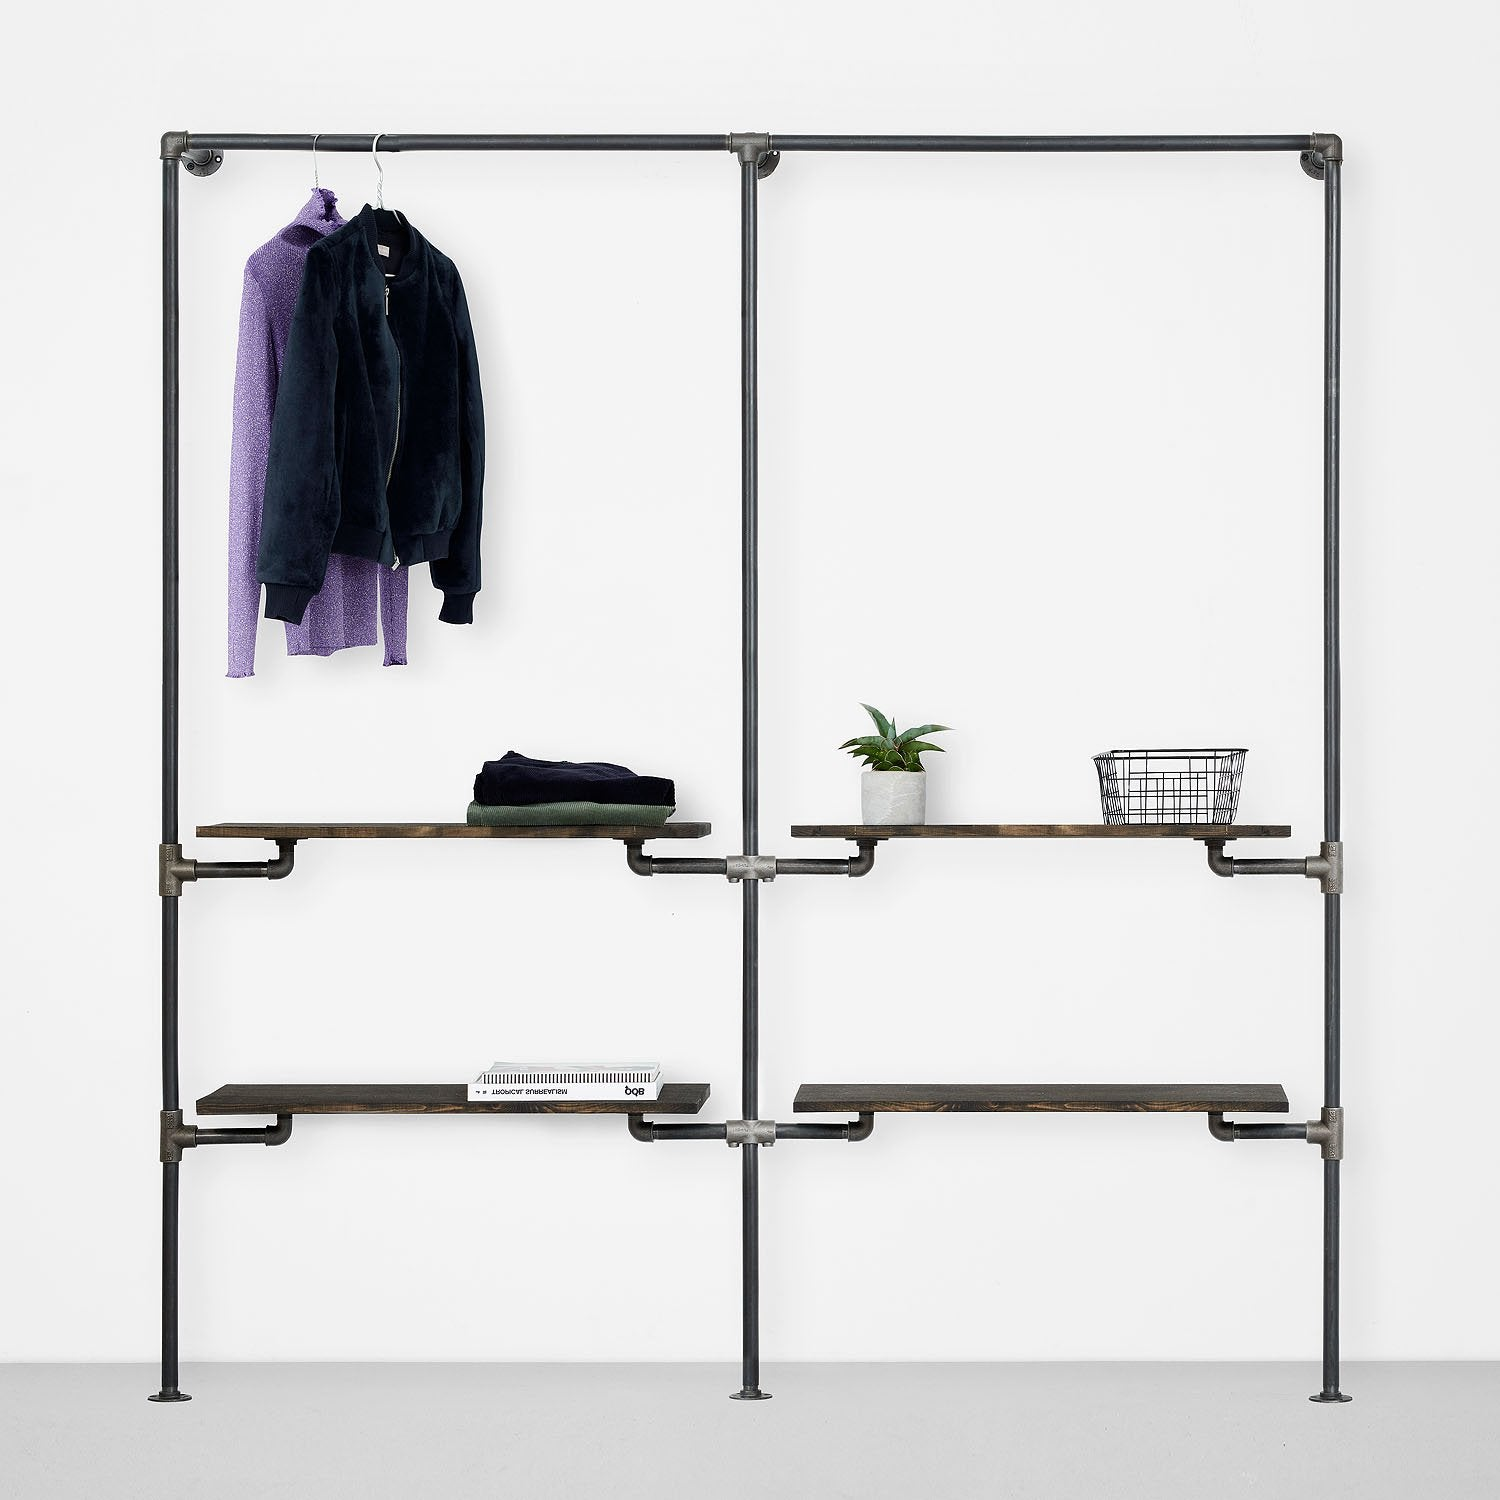 The Walk-In 2 row wardrobe system - 1 rail & 2 shelves / 1 rail & 2 shelves